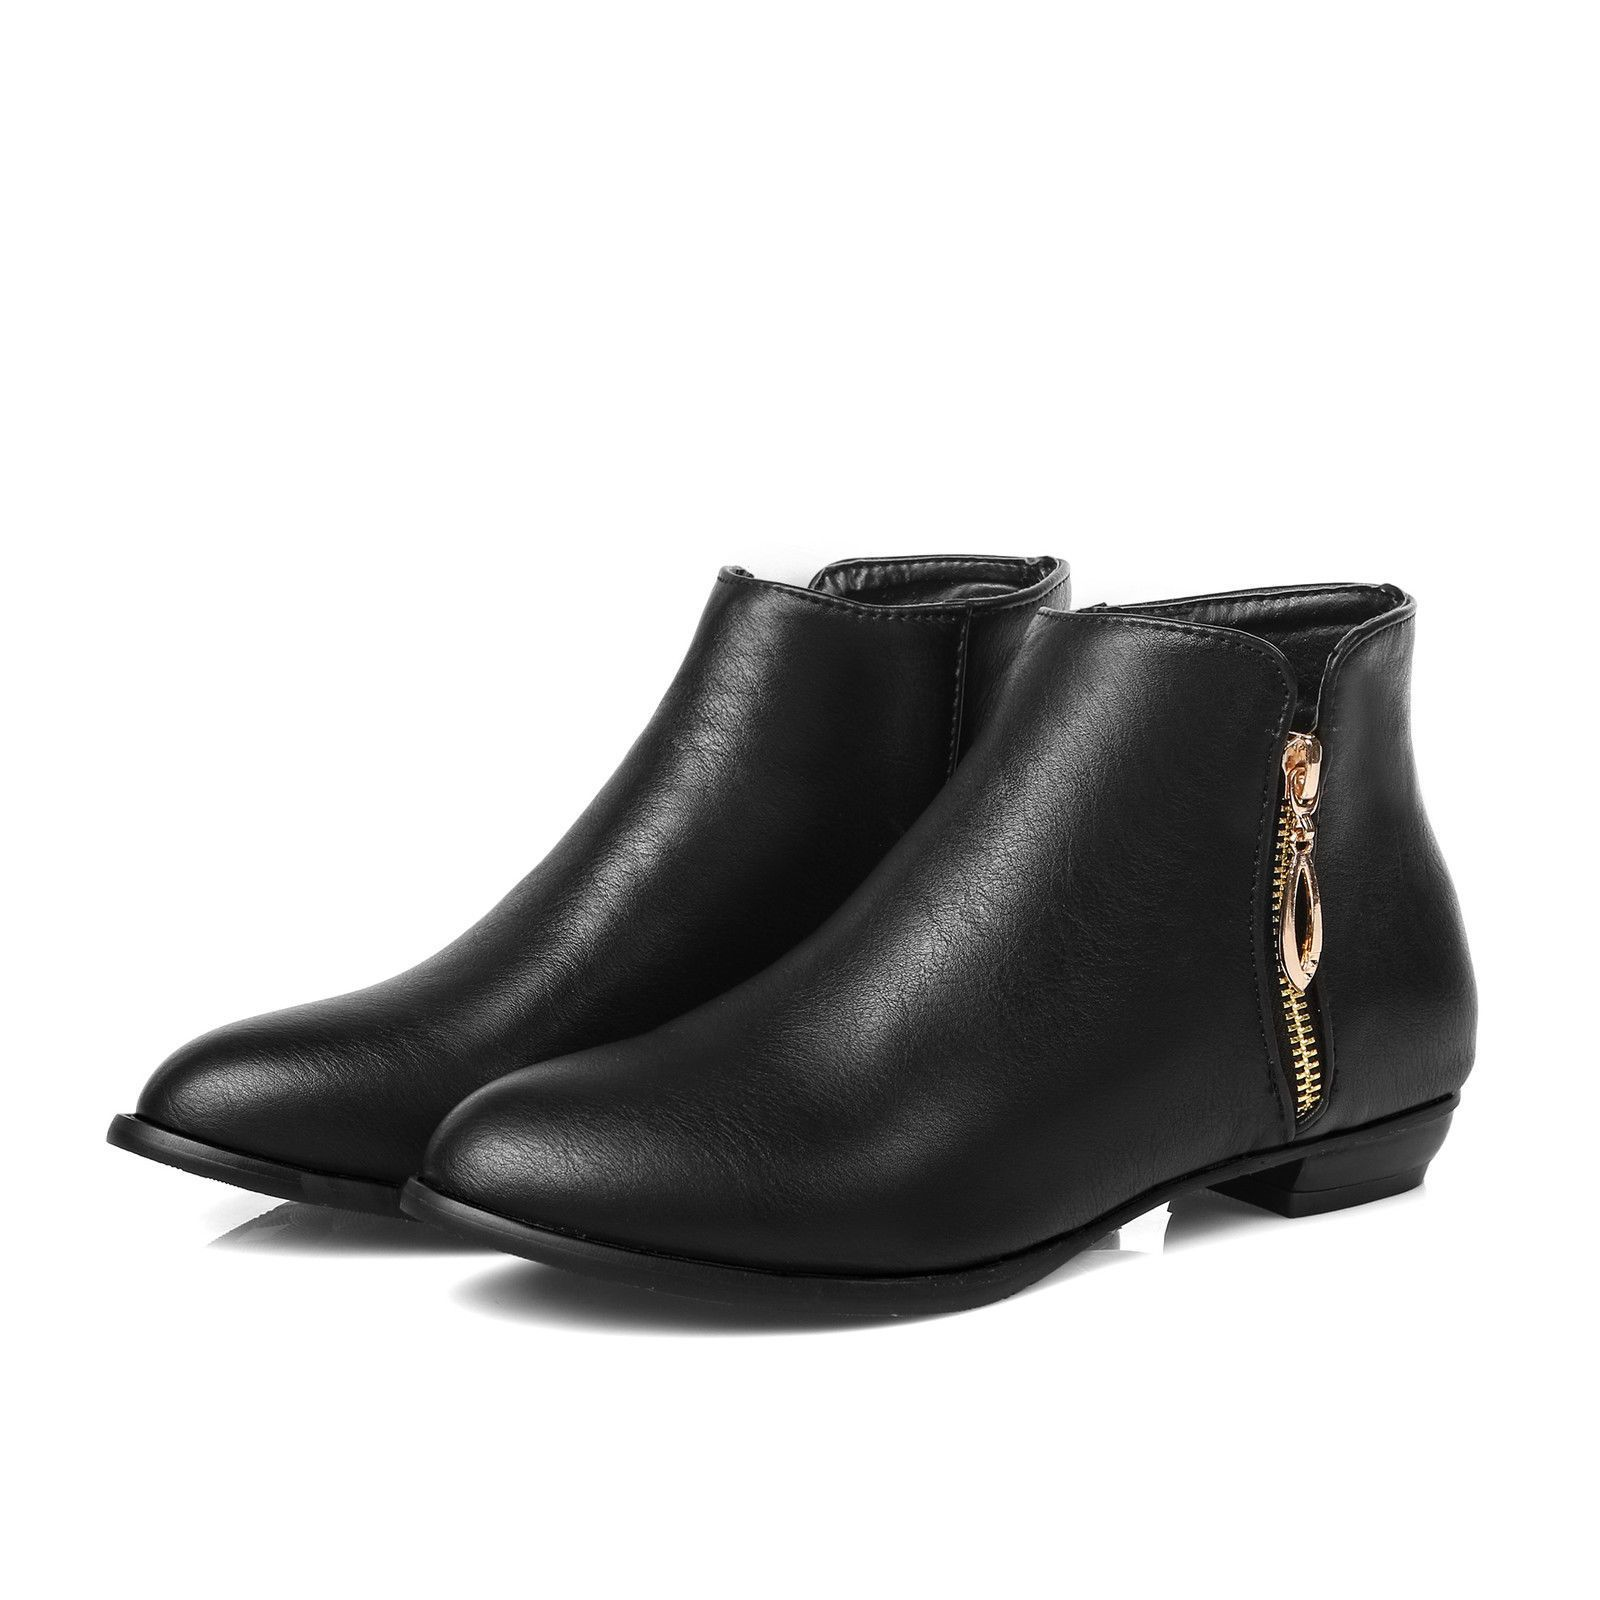 3bc0ec078373 Women Shoes Flat Heel Round Toe Chunky Heel Leather Zipper Up Casual Ankle  Boots. black ...